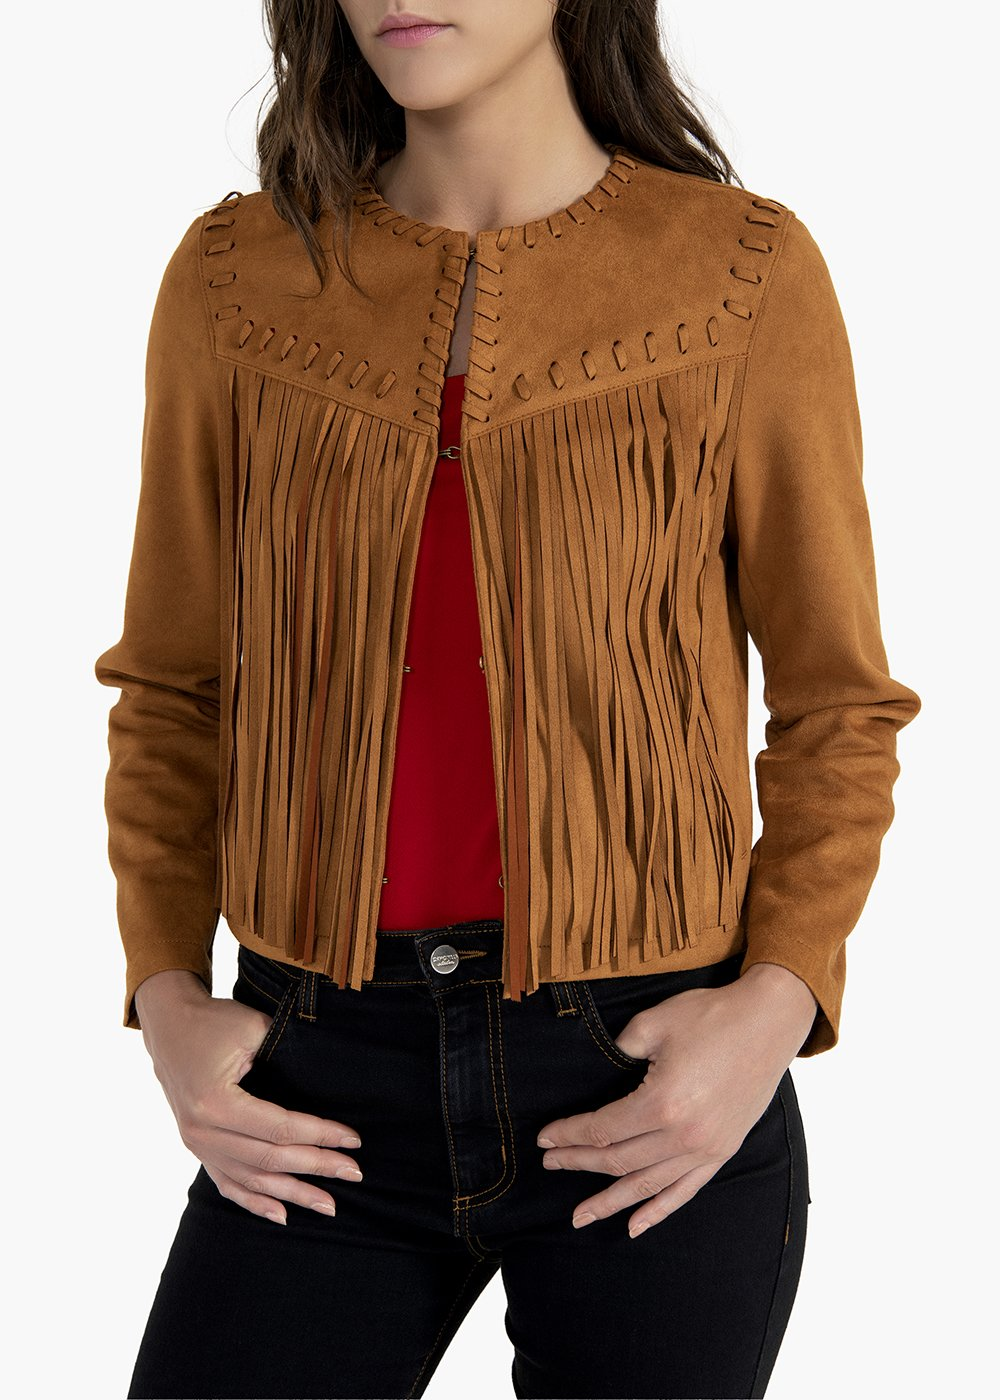 Gary fake suede jacket with fringes on the front and back - Sughero - Woman